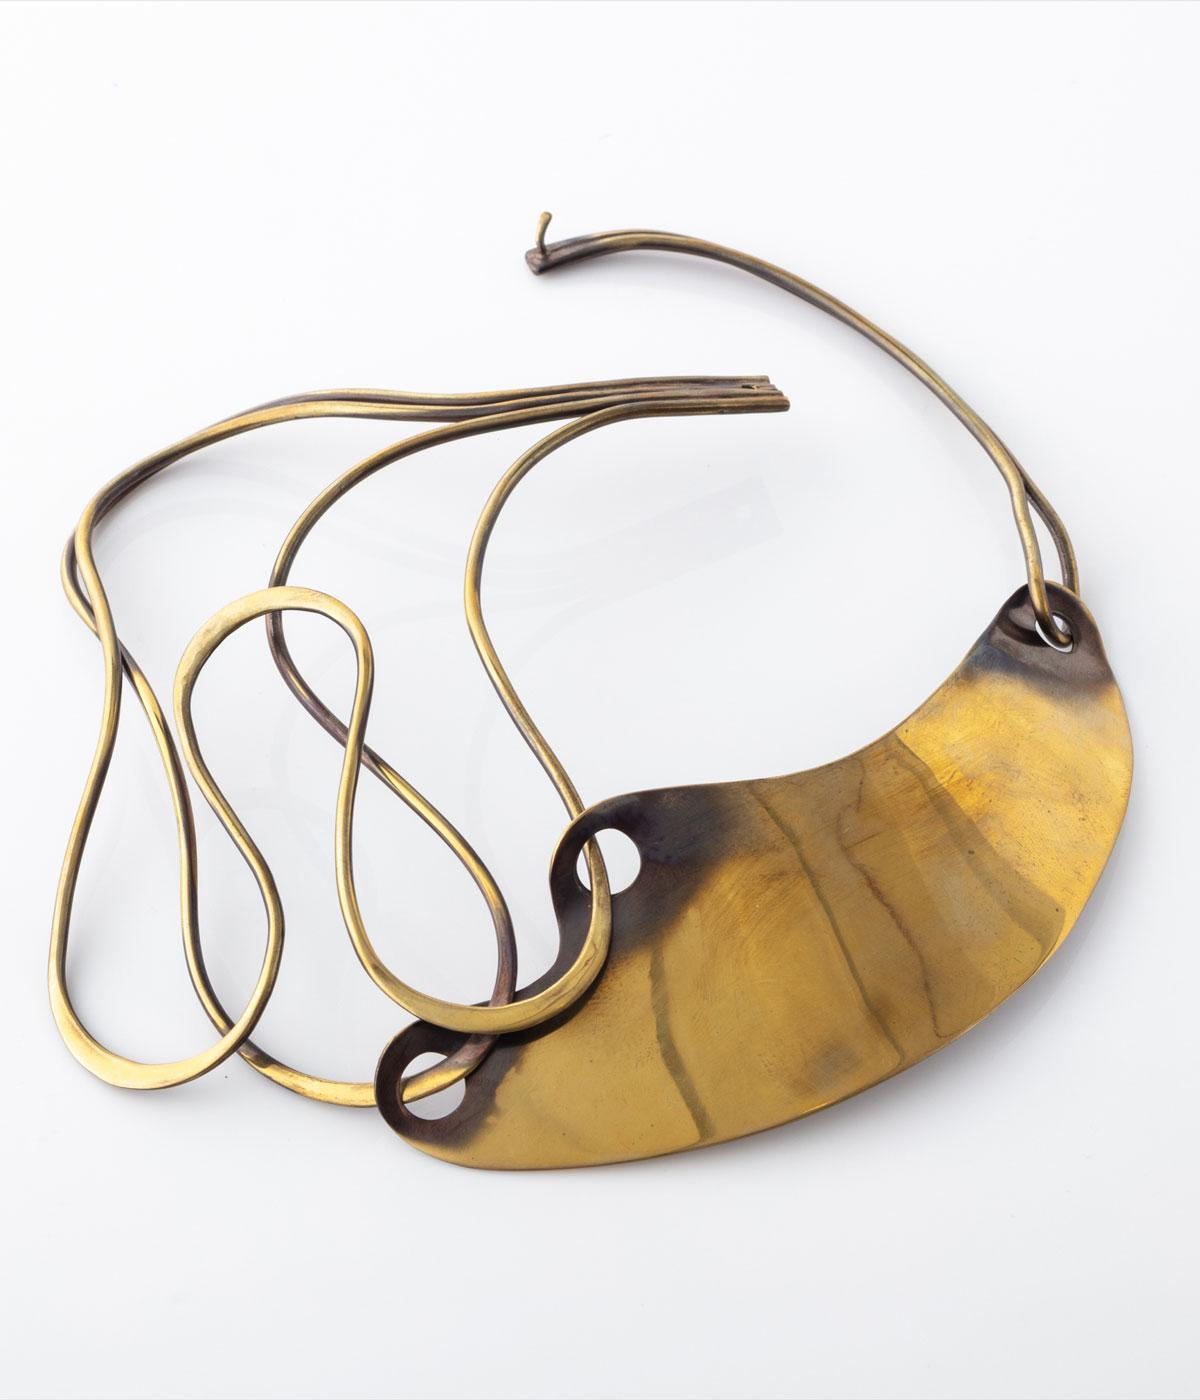 Gold curved necklace against a grey background